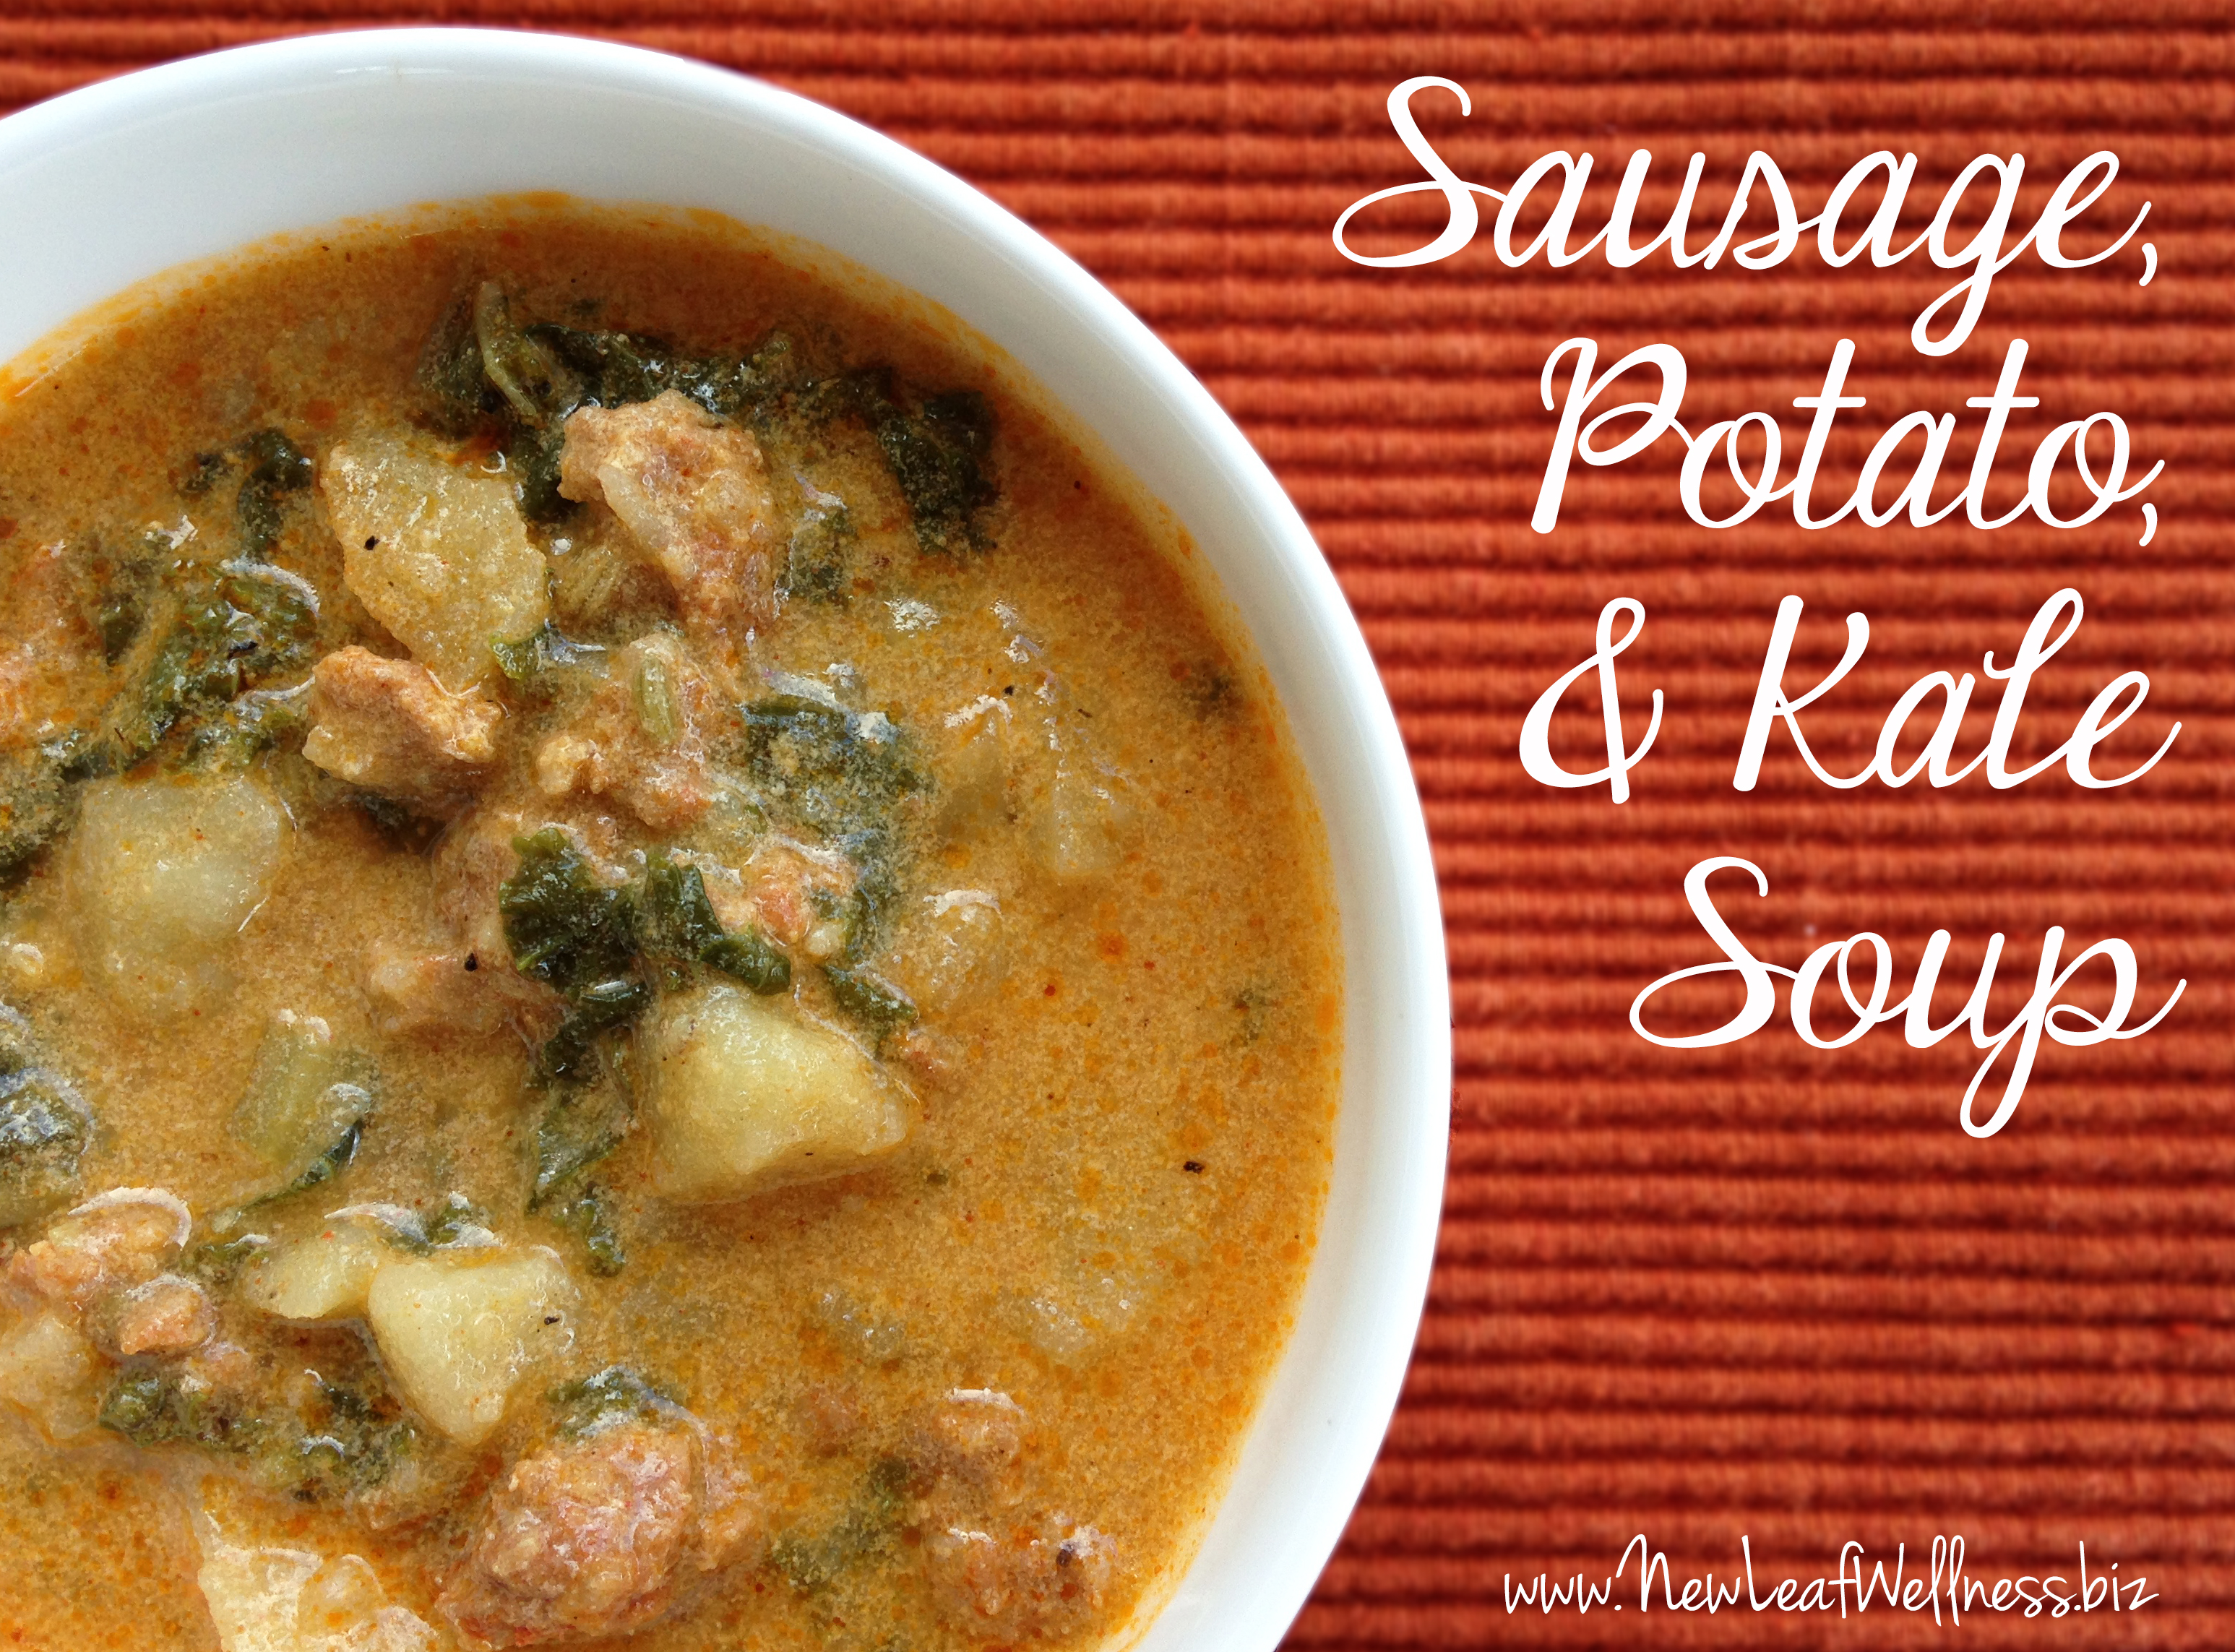 This sausage, potato, and kale soup recipe is the perfect winter soup ...